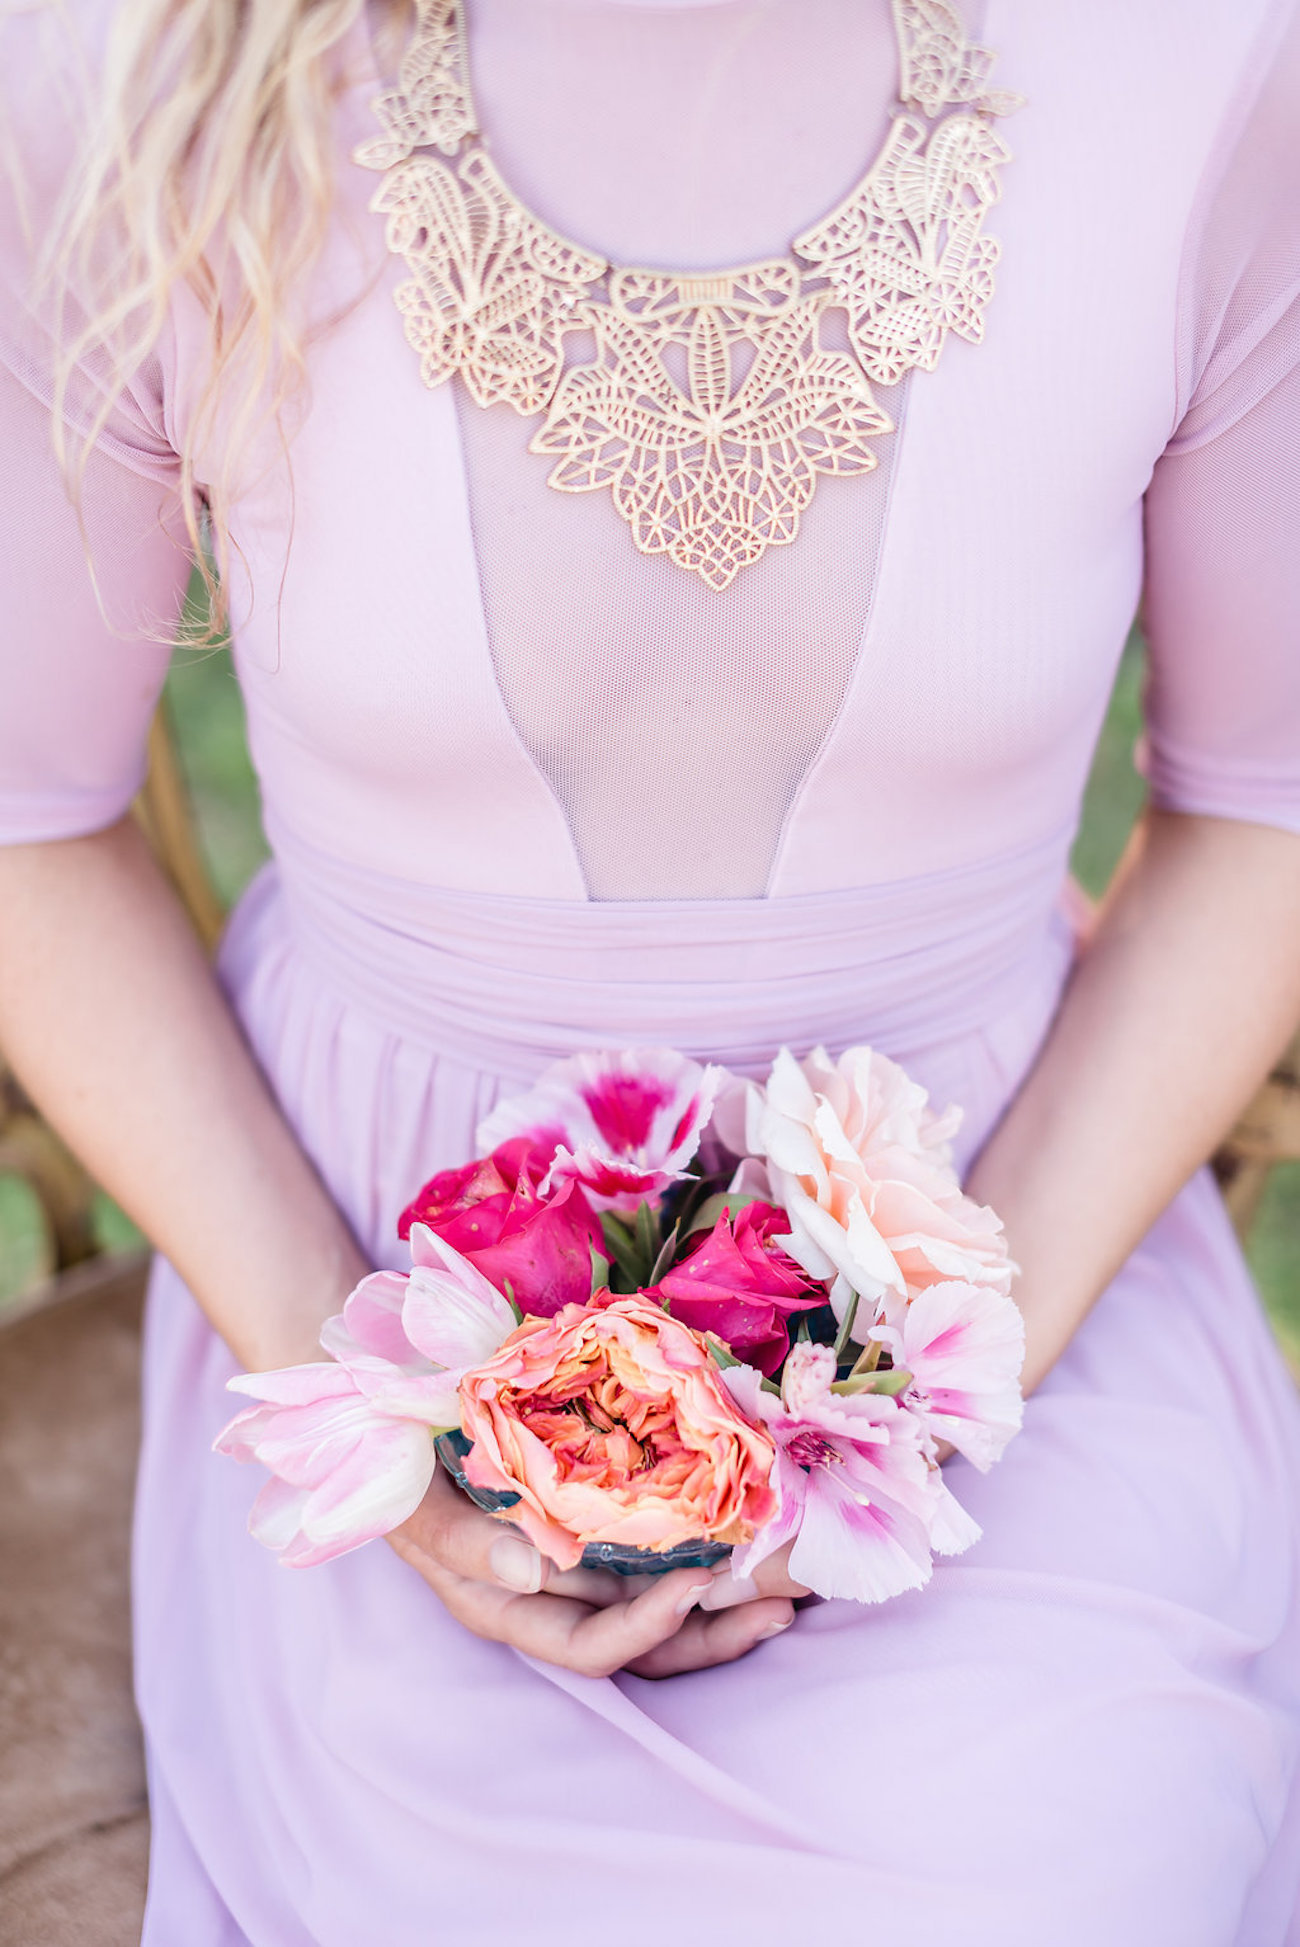 Pink Lace Bridesmaid or Wedding Dress | Credit: Jacoba Clothing/PhotoKru